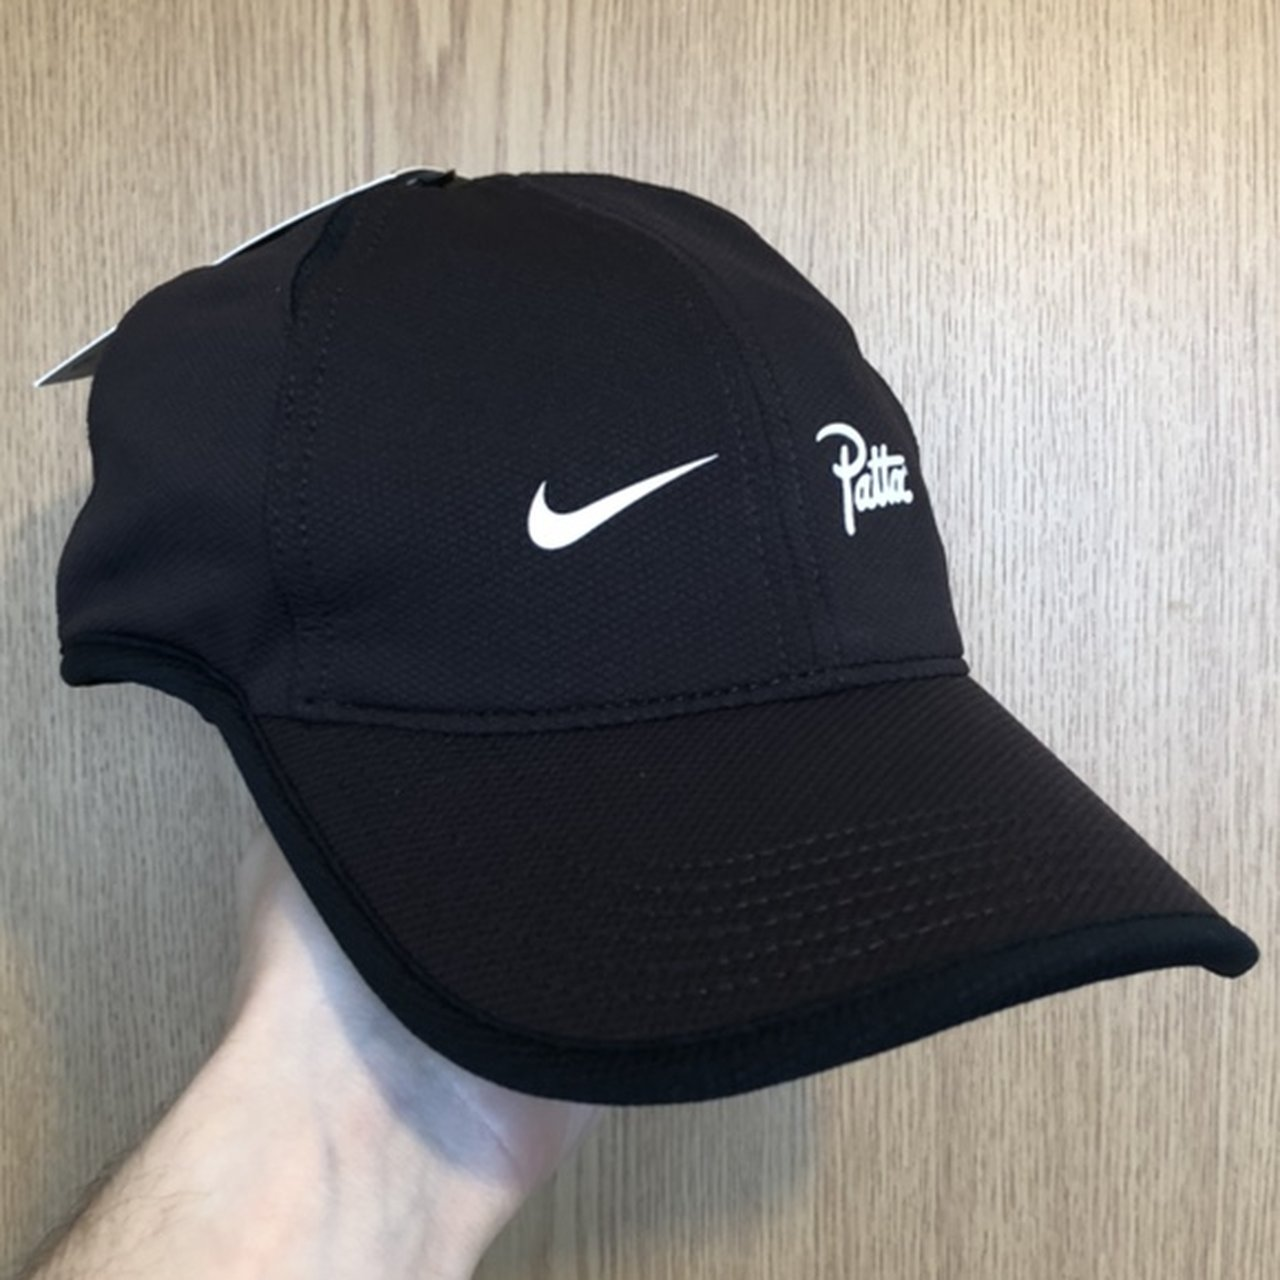 Nike x Patta cap in velvet brown 🧢 Real fire piece with a - Depop 396f8b9a25b